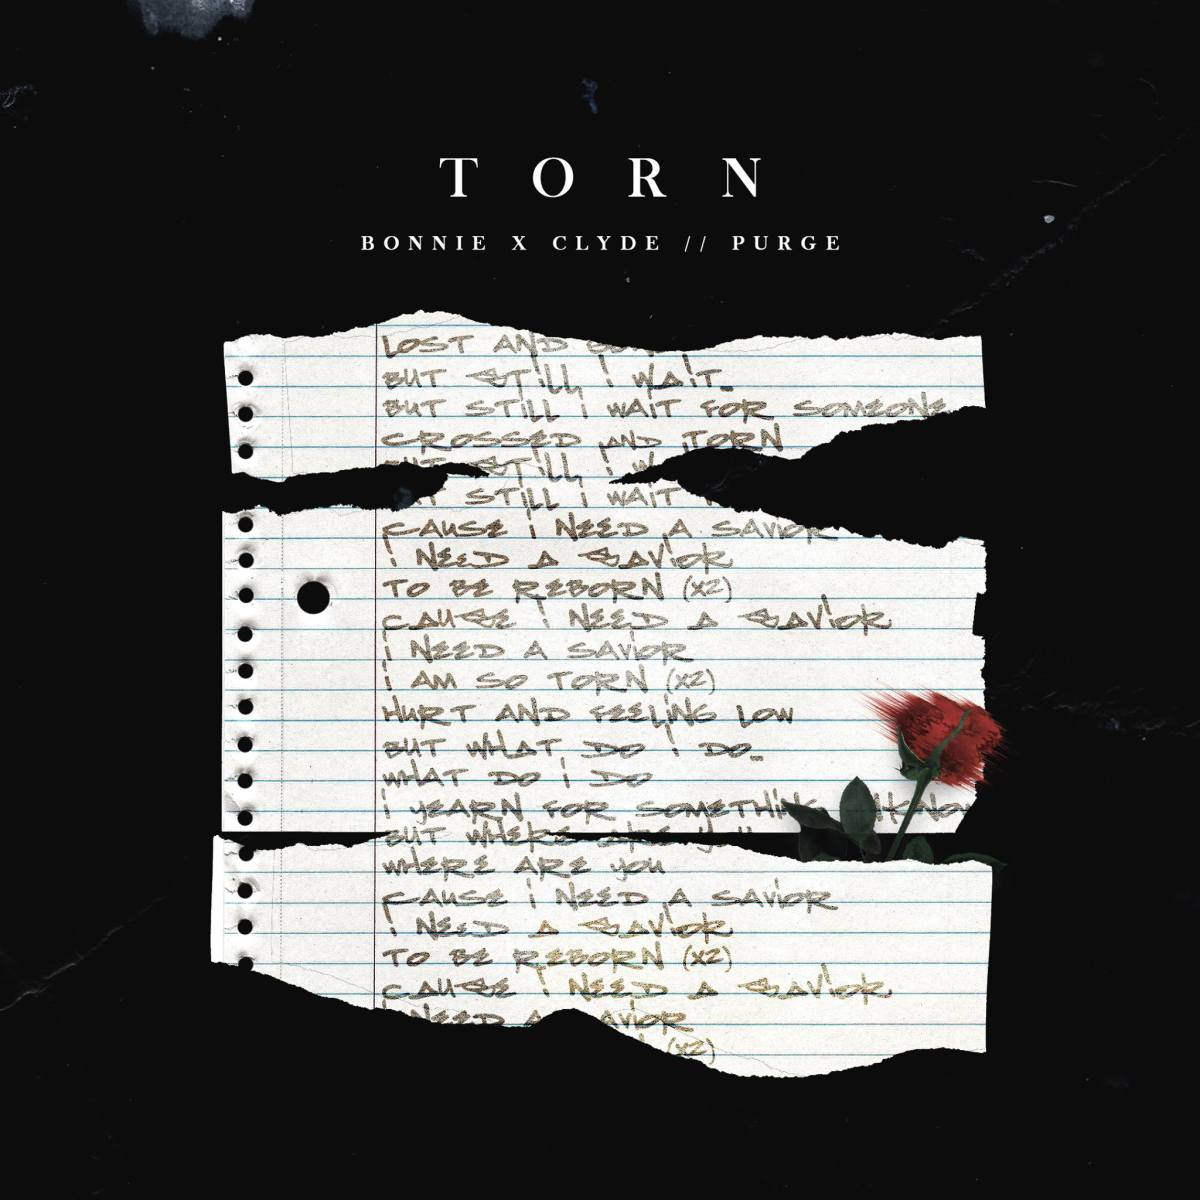 """Torn"" - Bonnie X Clyde and Purge [Review]"